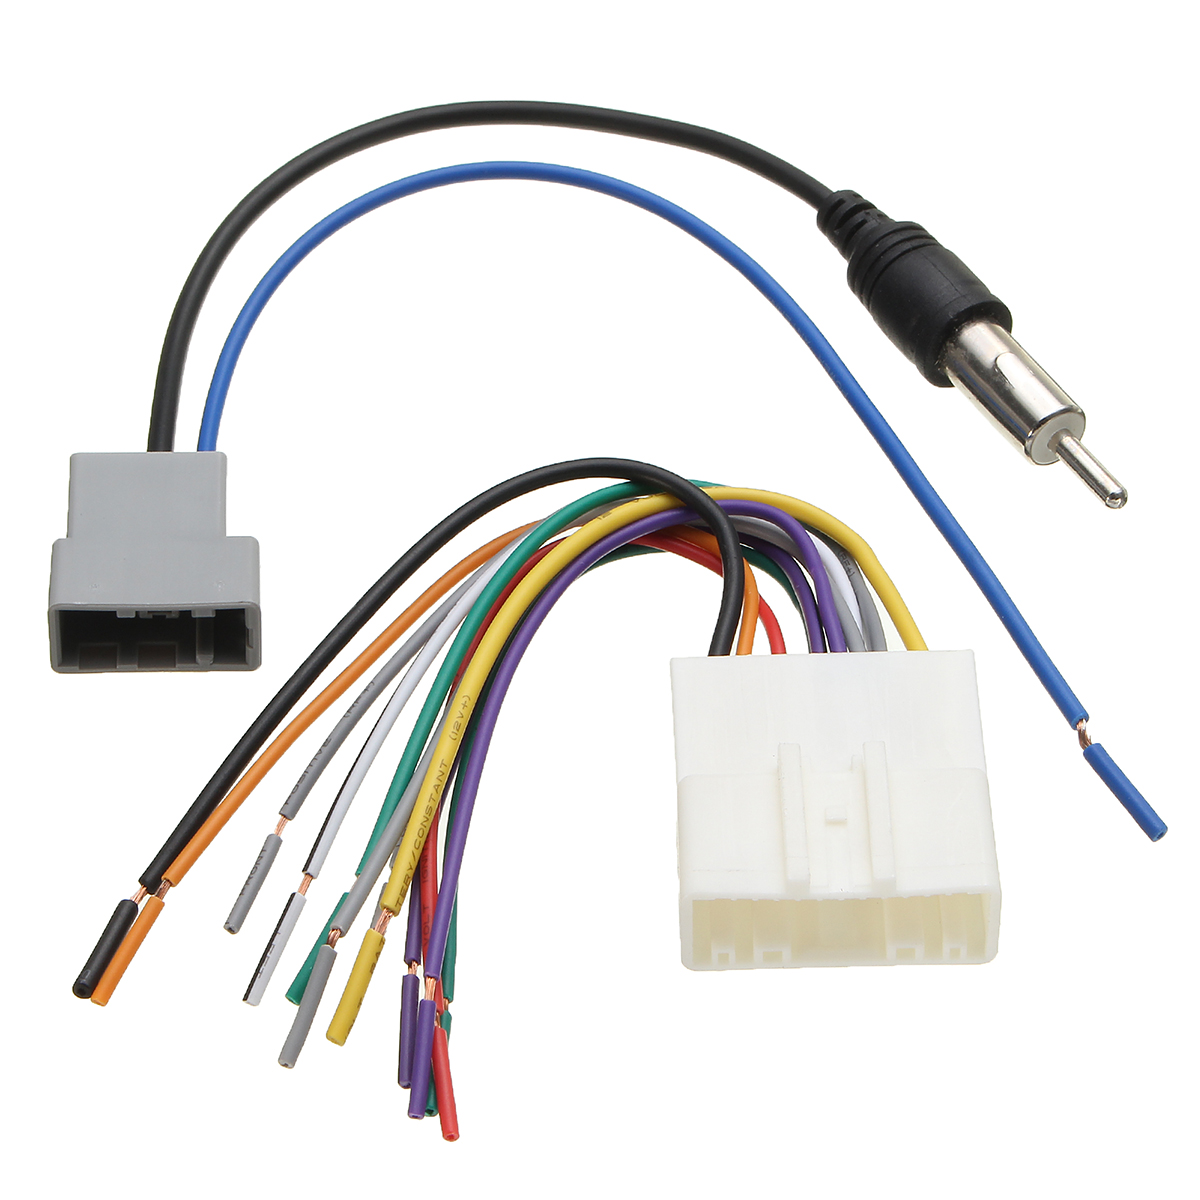 Buy Nissan Antenna Adapter And Get Free Shipping On Car Cd Stereo Fitting Kit Wiring Harness Iso Aerial Adaptors